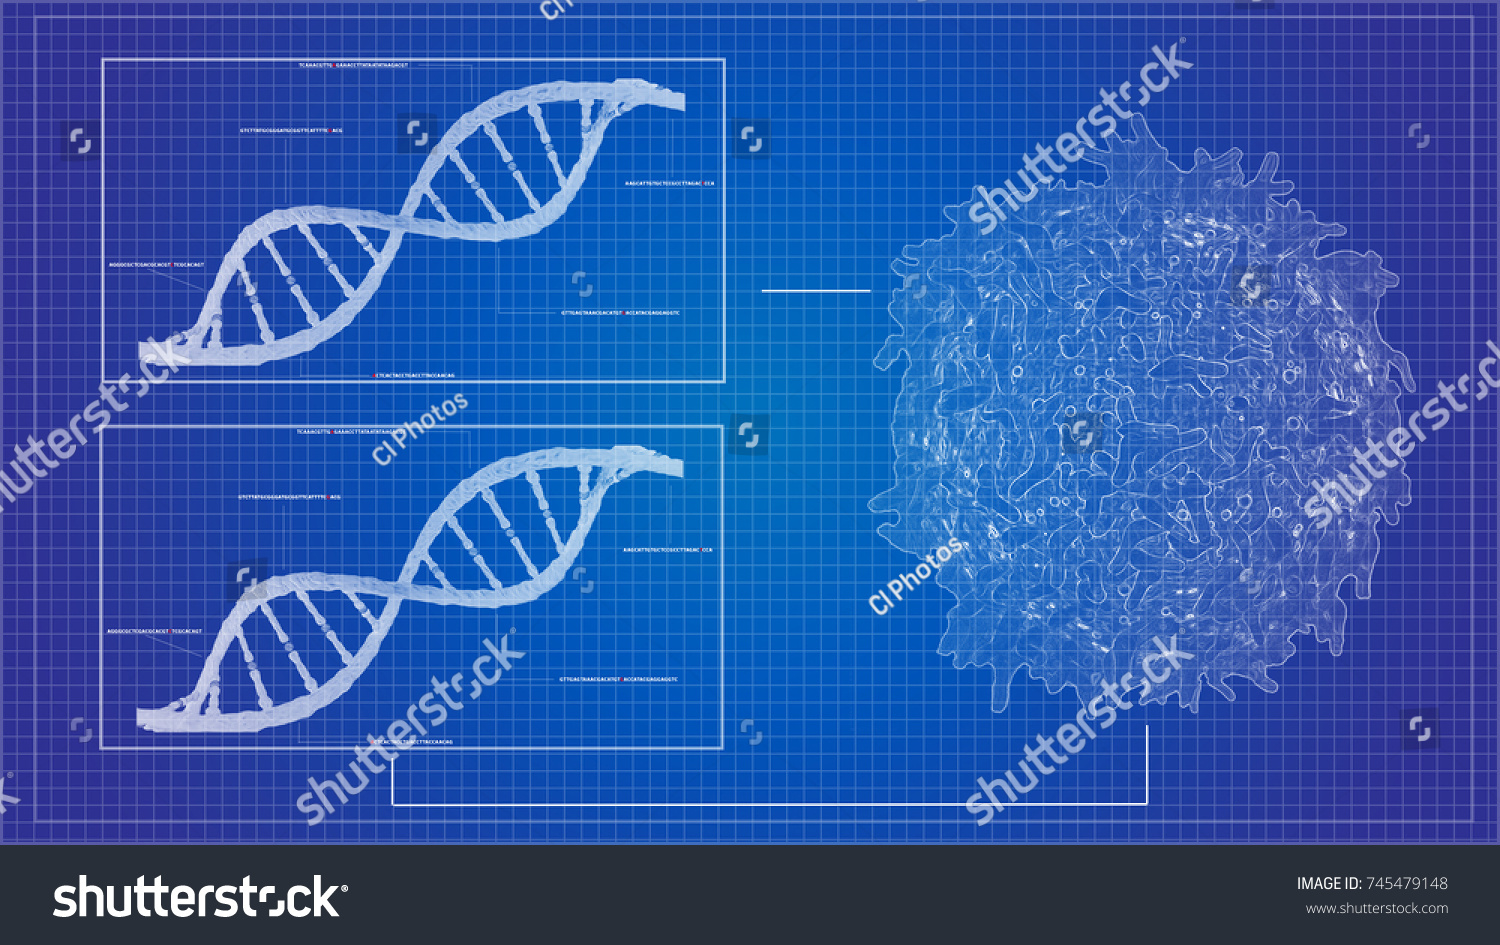 Blueprint concept cancer cell lymphocyte t ilustracin en stock blueprint concept of cancer cell lymphocyte t and dna helix background sequencing data analysis malvernweather Choice Image